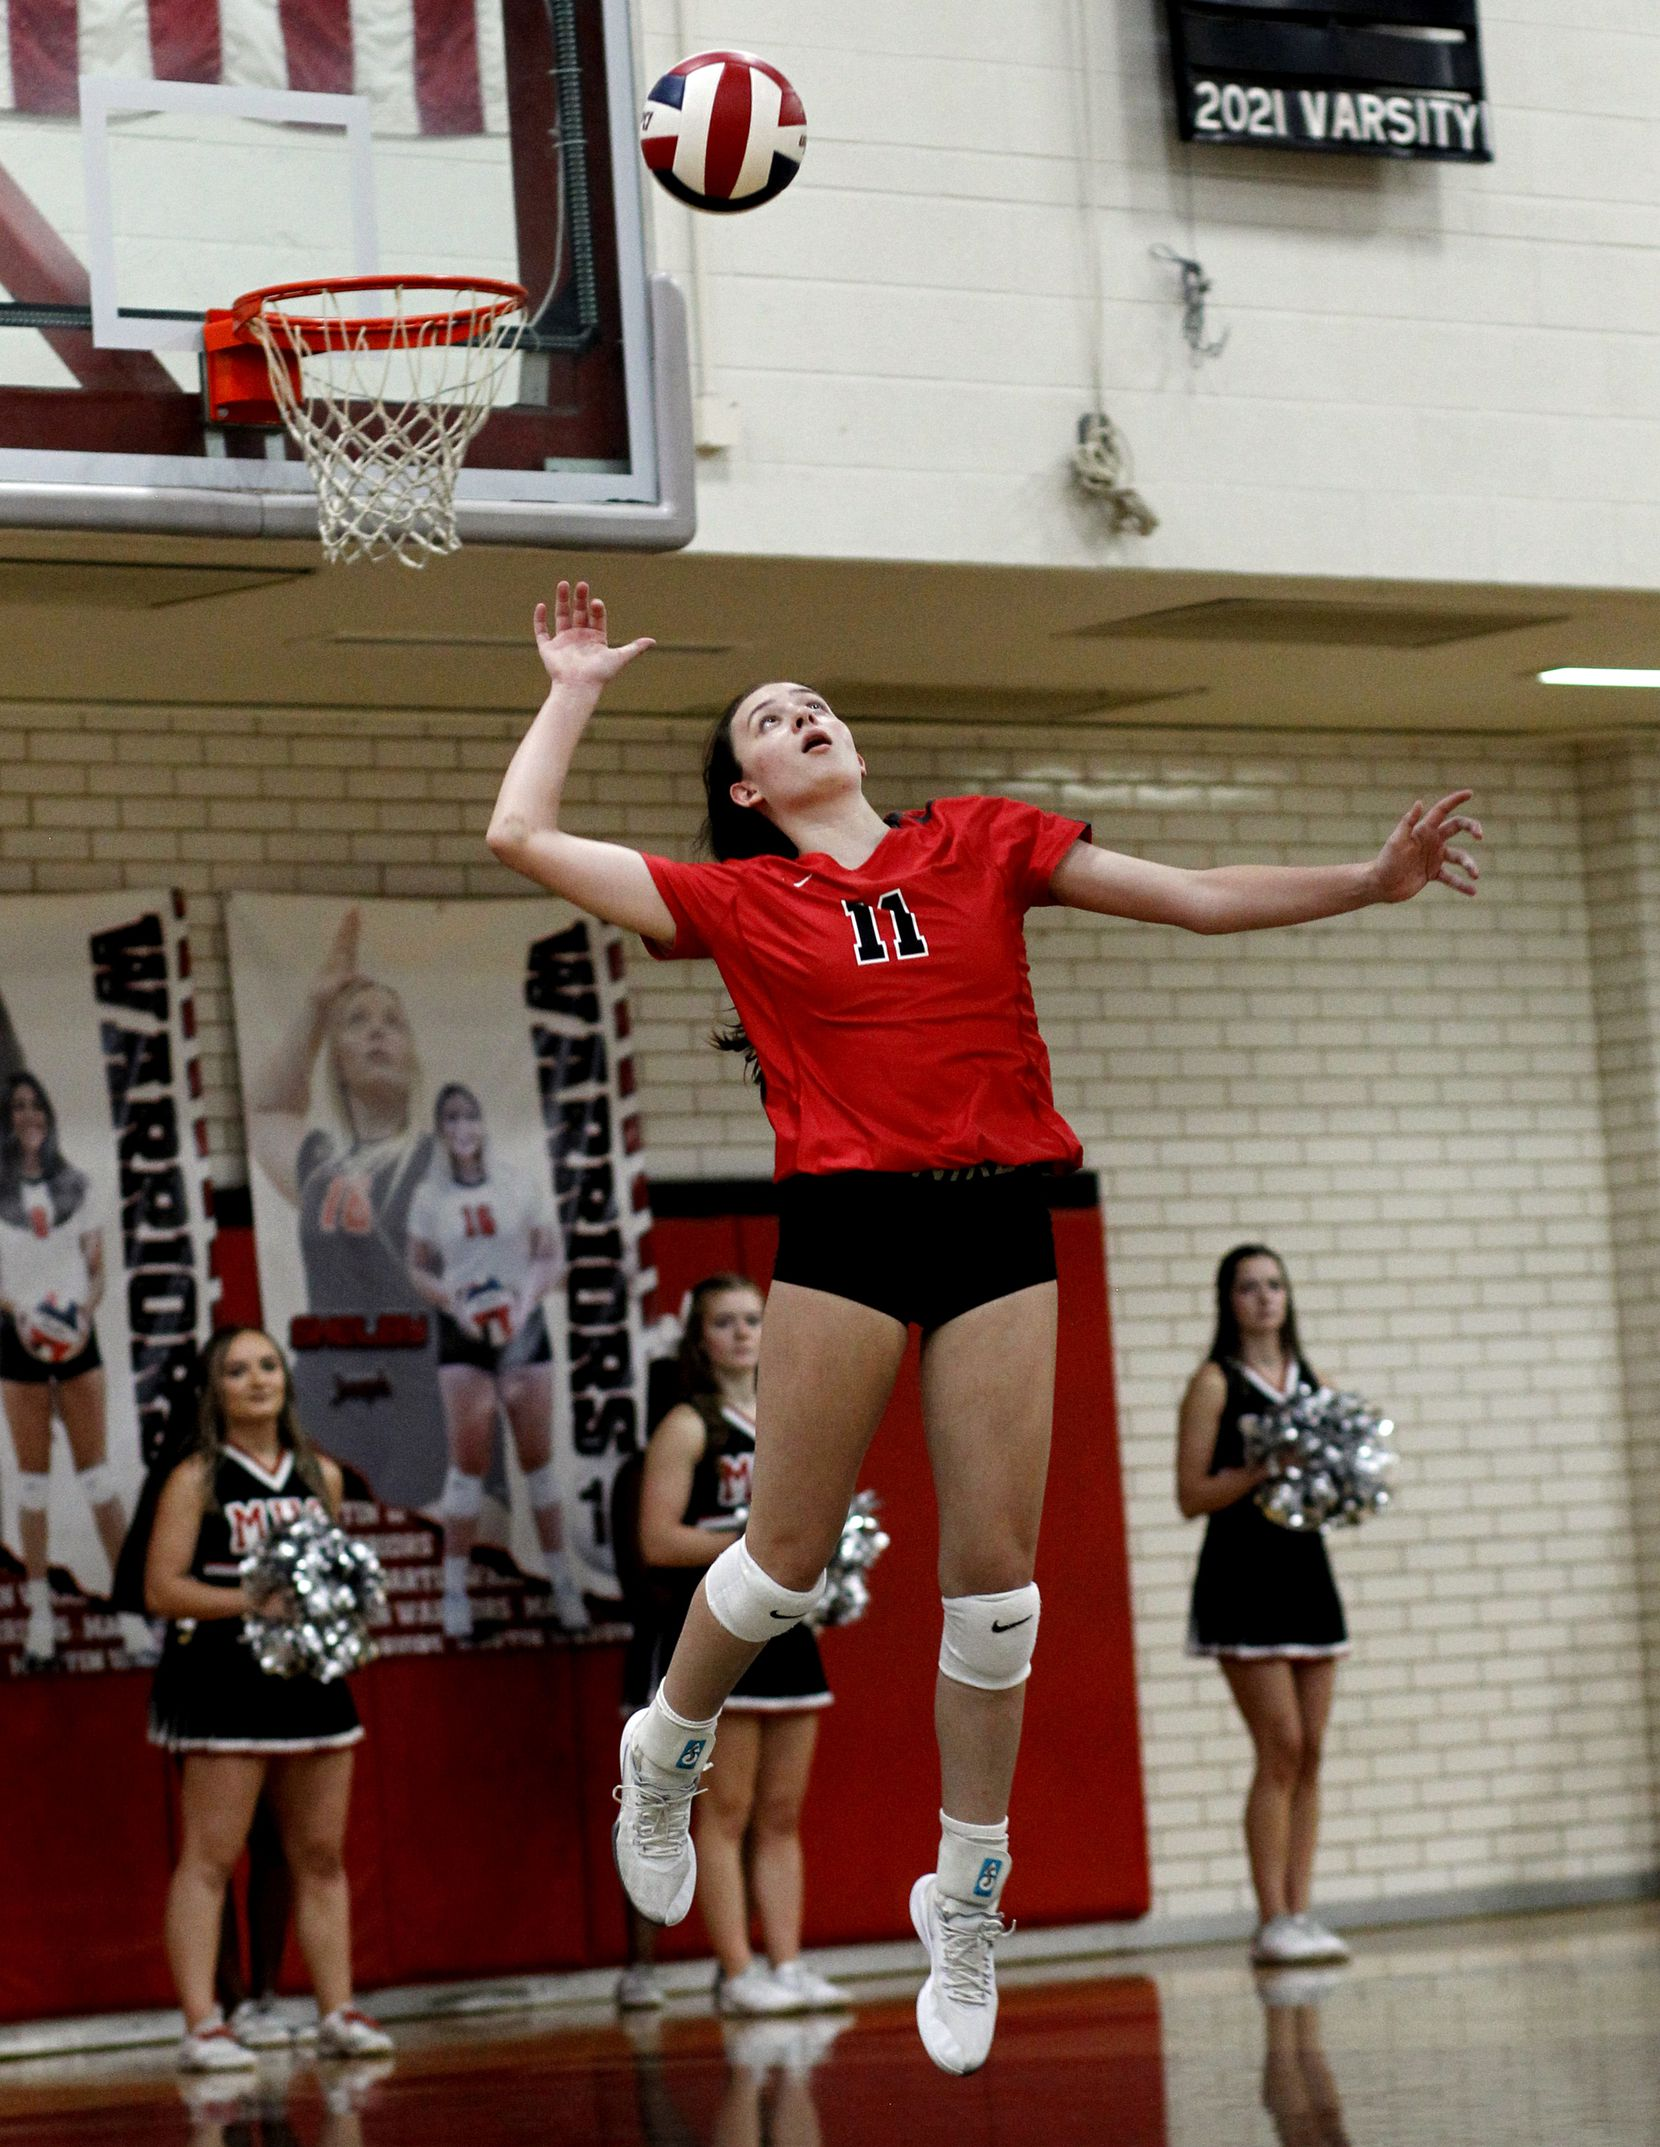 Arlington Martin's Madeline Hopp (11) serves during the 3rd set of the Warriors' straight set victory over South Grand Prairie. The two teams played their volleyball match at Arlington Martin High School in Arlington on September 14, 2021. (Steve Hamm/ Special Contributor)